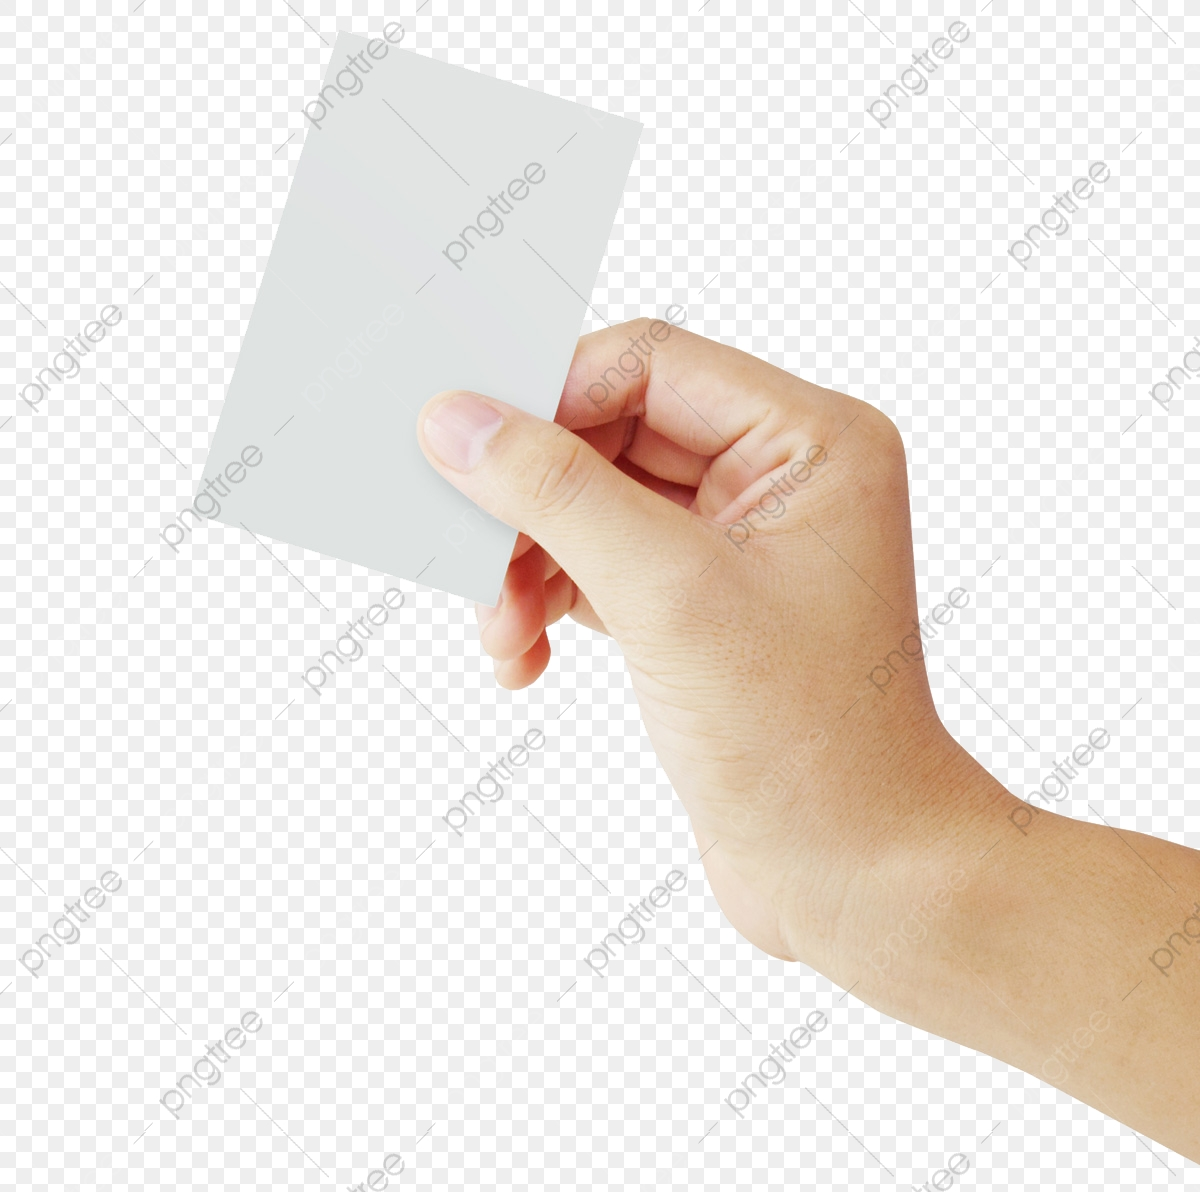 Positive Holding Paper, Card, Gesture, White Paper PNG.